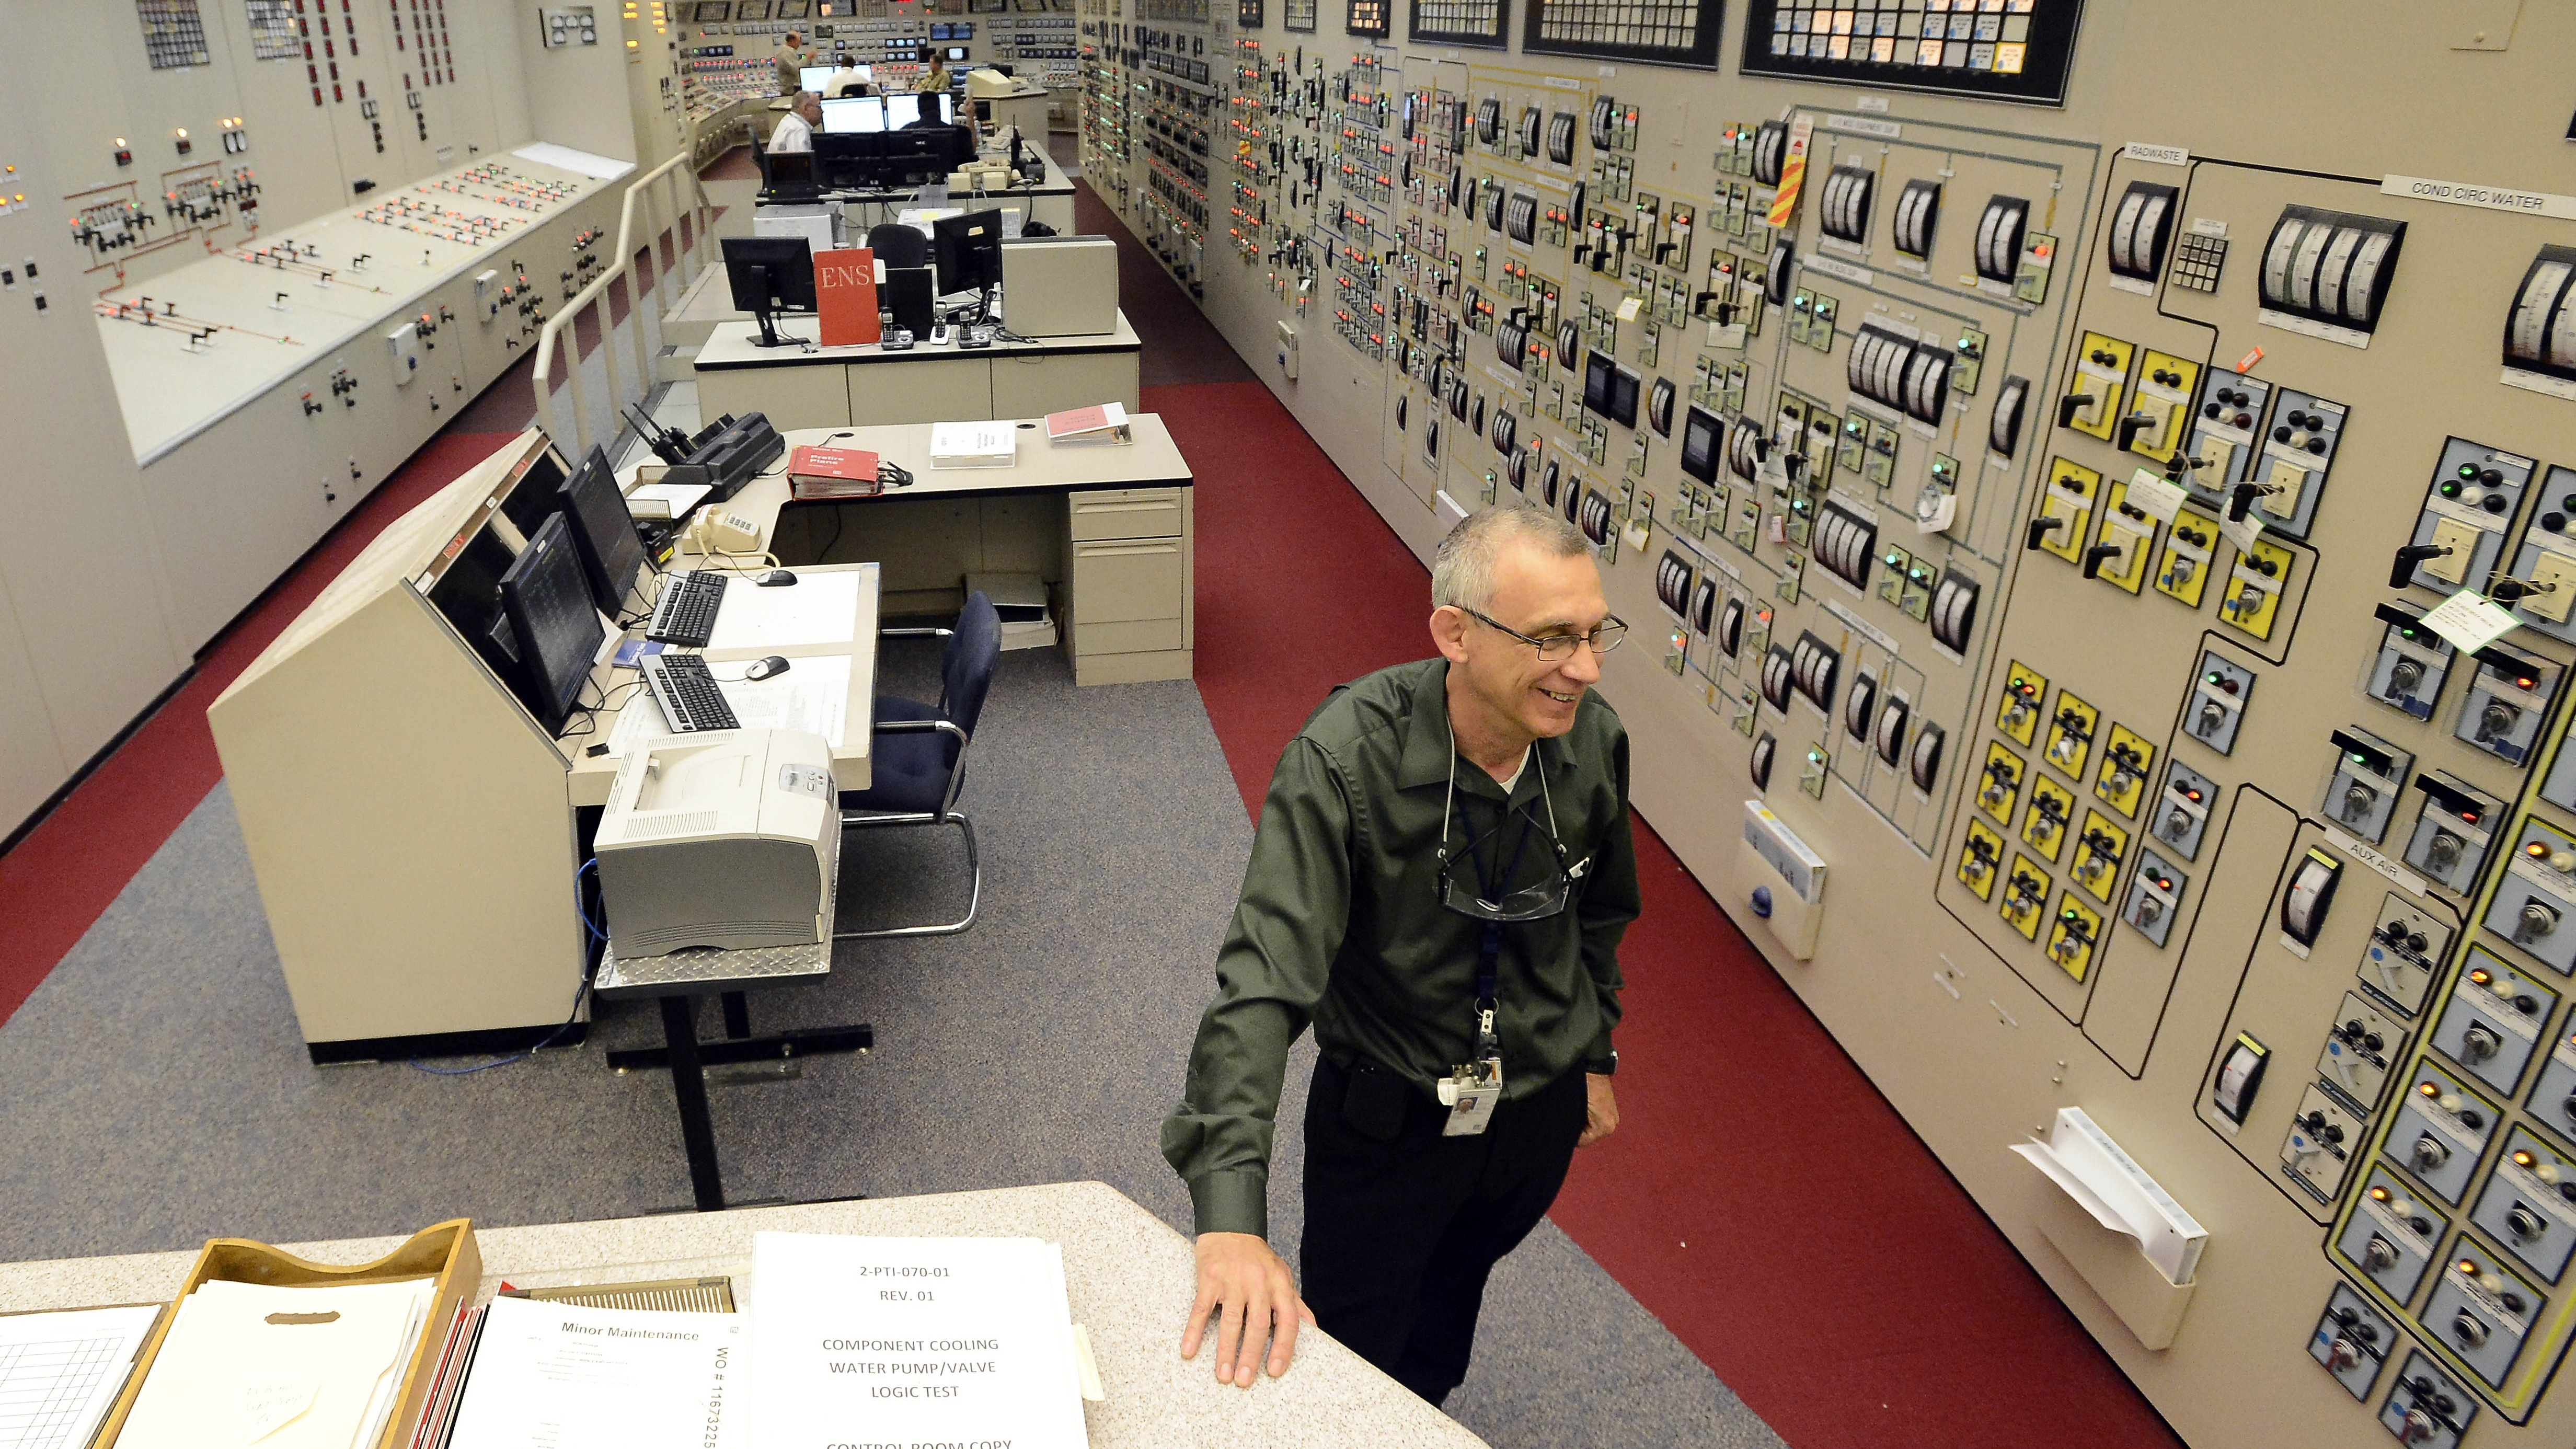 Tom Wallace, Unit 2 senior manager, works in the control room building for Unit 1 and Unit 2 at the Watts Bar Nuclear Plant near Spring City, Tenn.